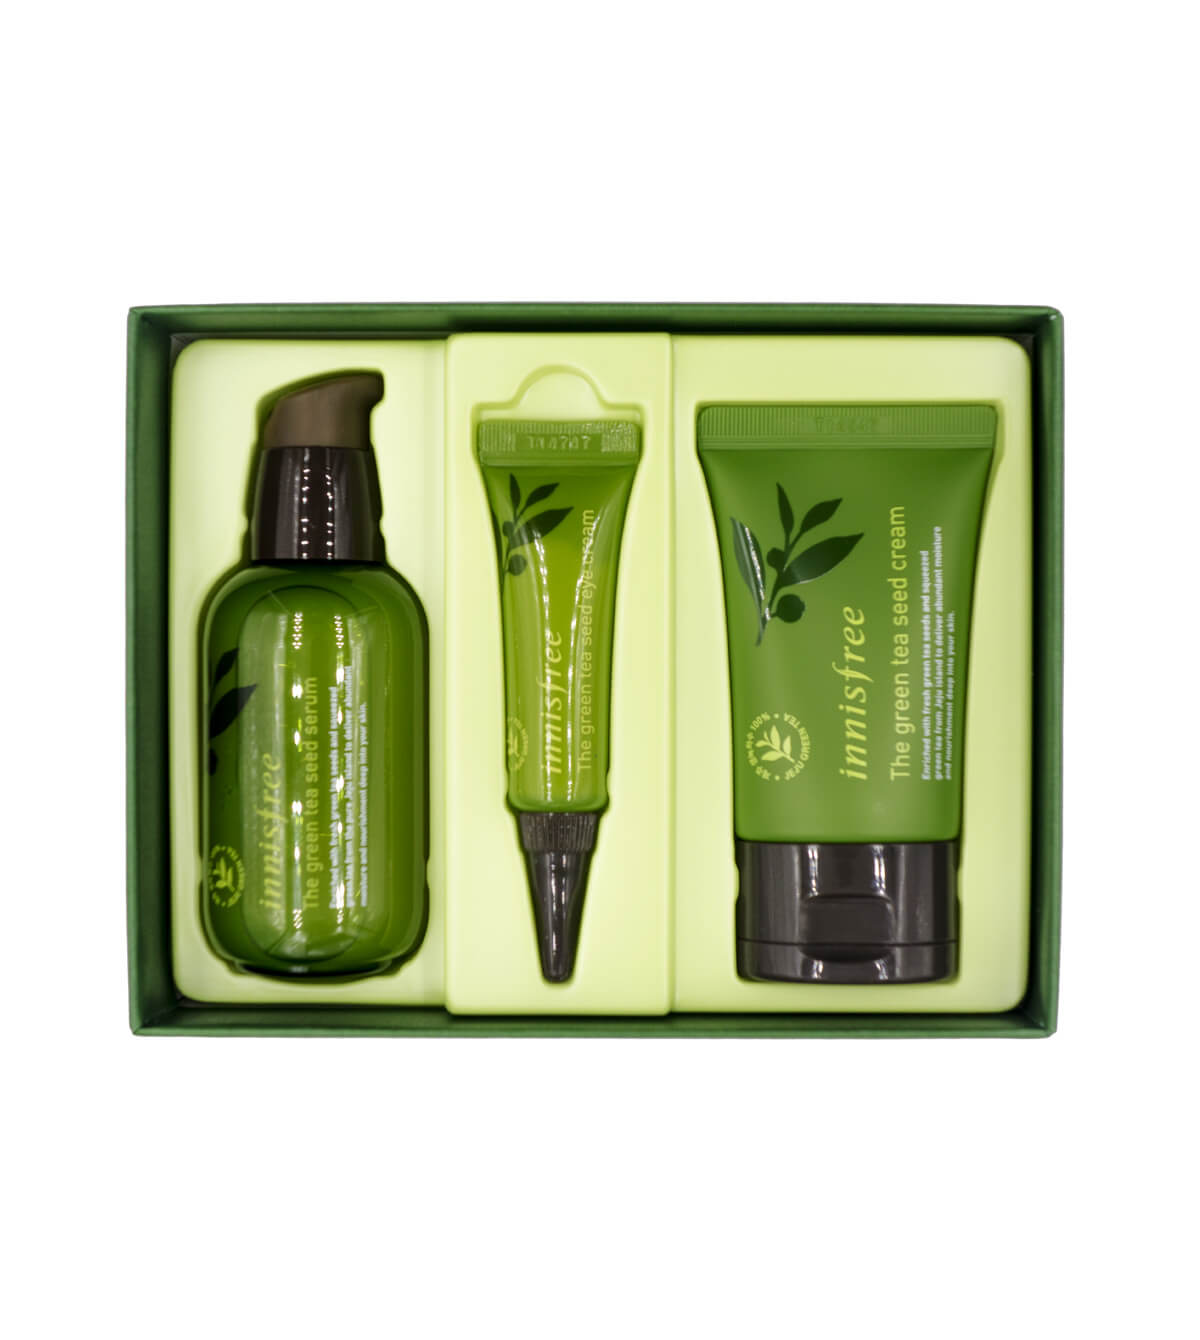 Innisfree The green tea seed serum kit set